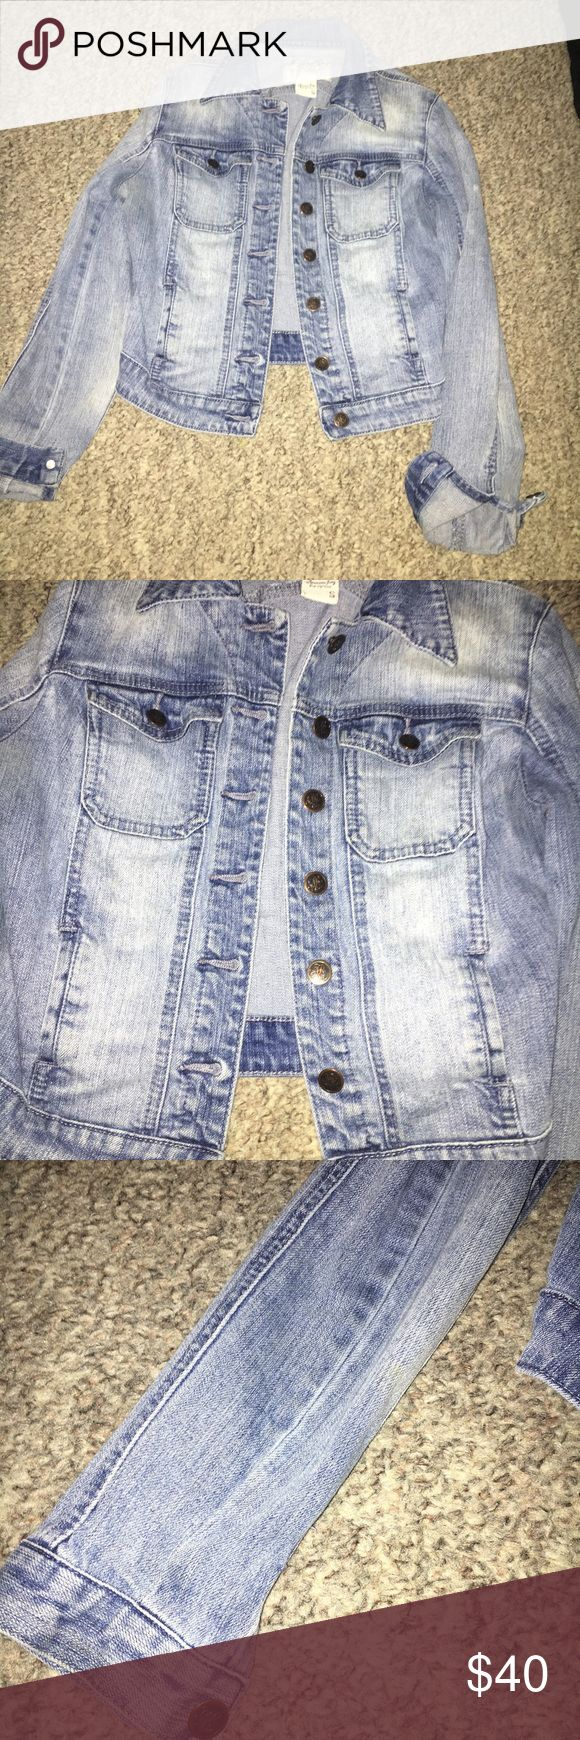 American rag denim jacket Great condition American rag denim jacket size small wonderful for the fall American Rag Jackets & Coats